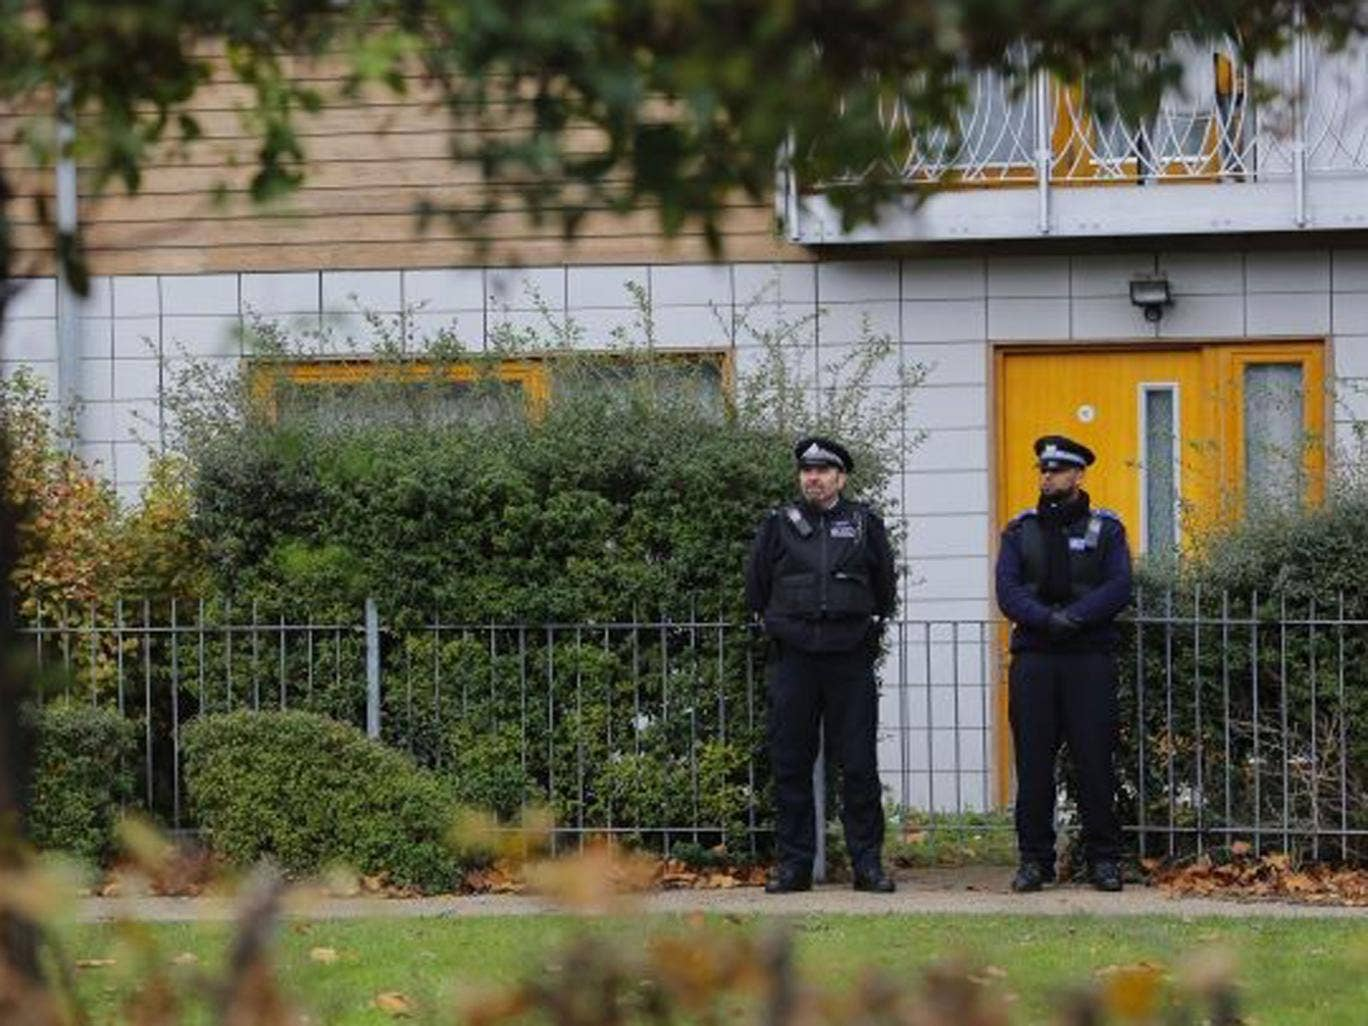 Police guard the flats being investigated in connection with an alleged slavery case